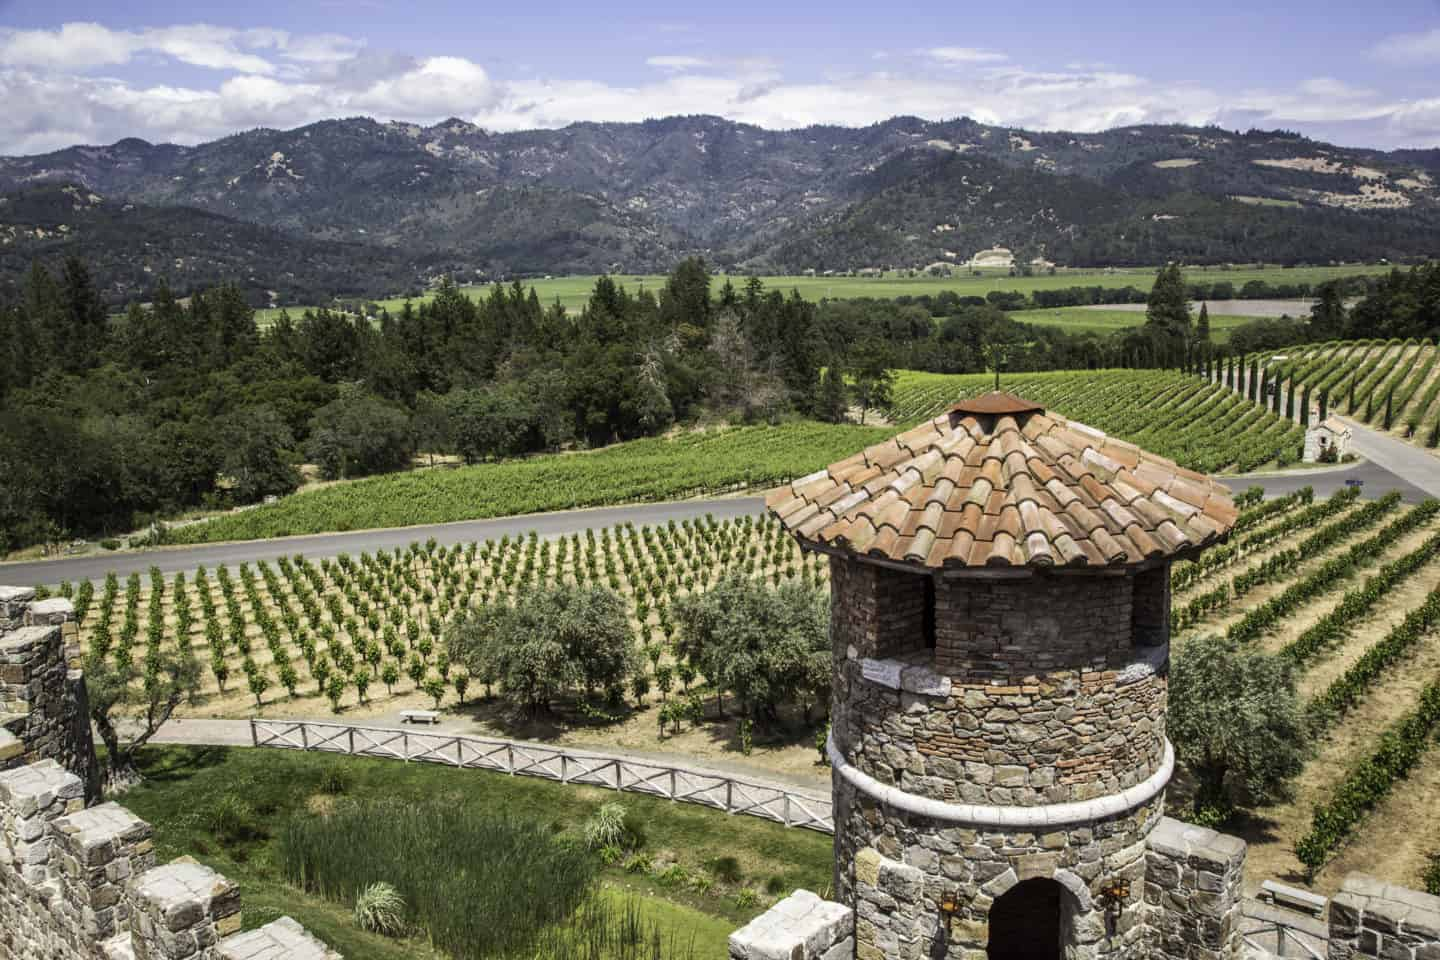 How Many Wineries Are There In Napa Valley - California Winery Advisor